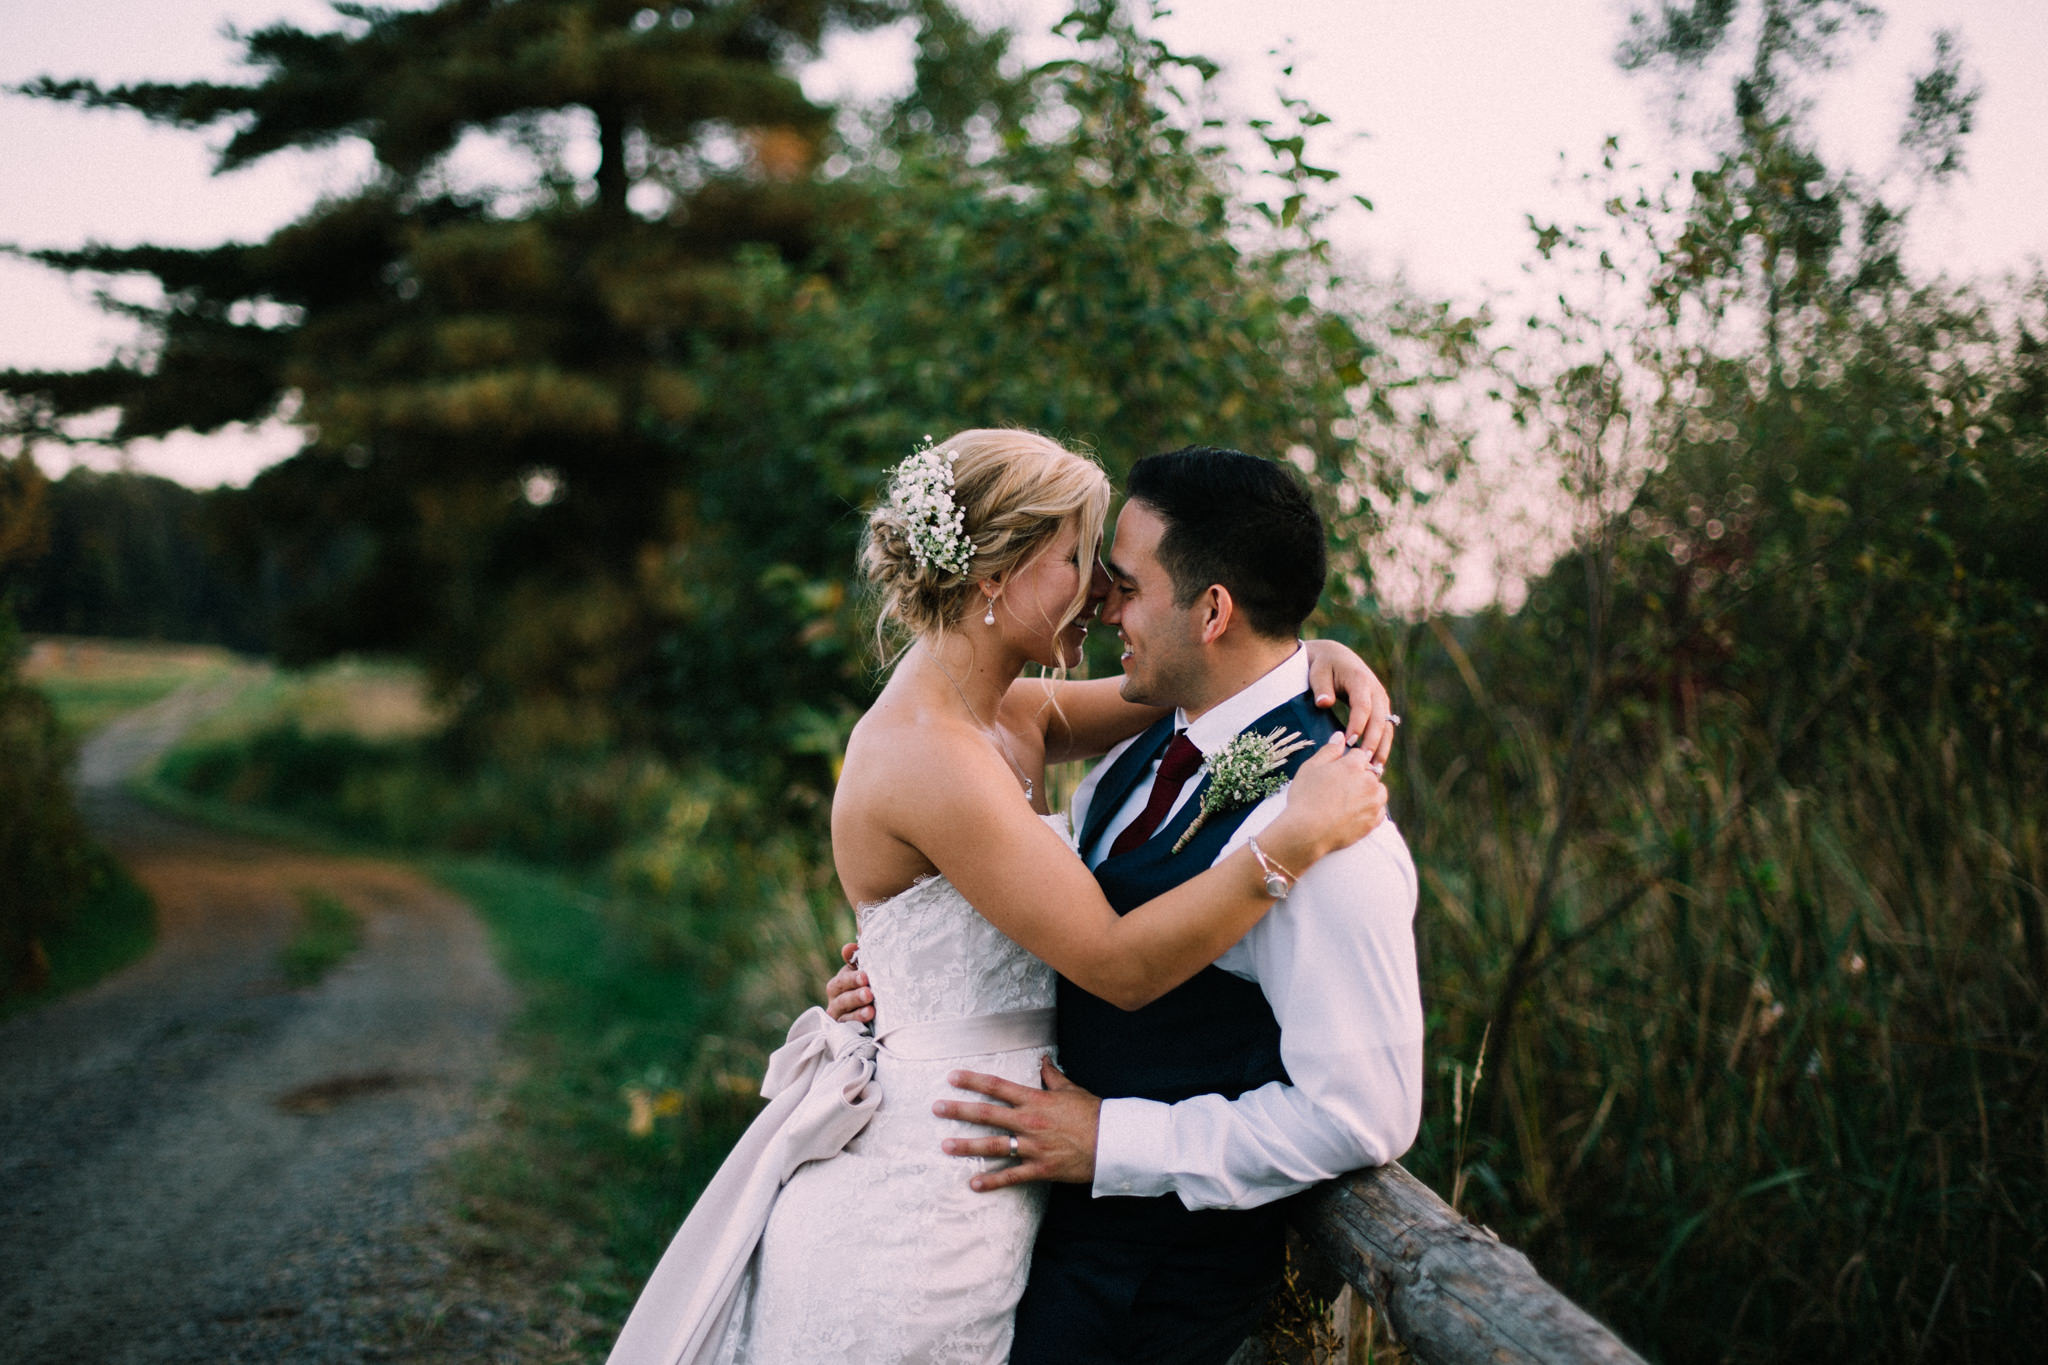 groom leaning on a fence while bride is hugging him